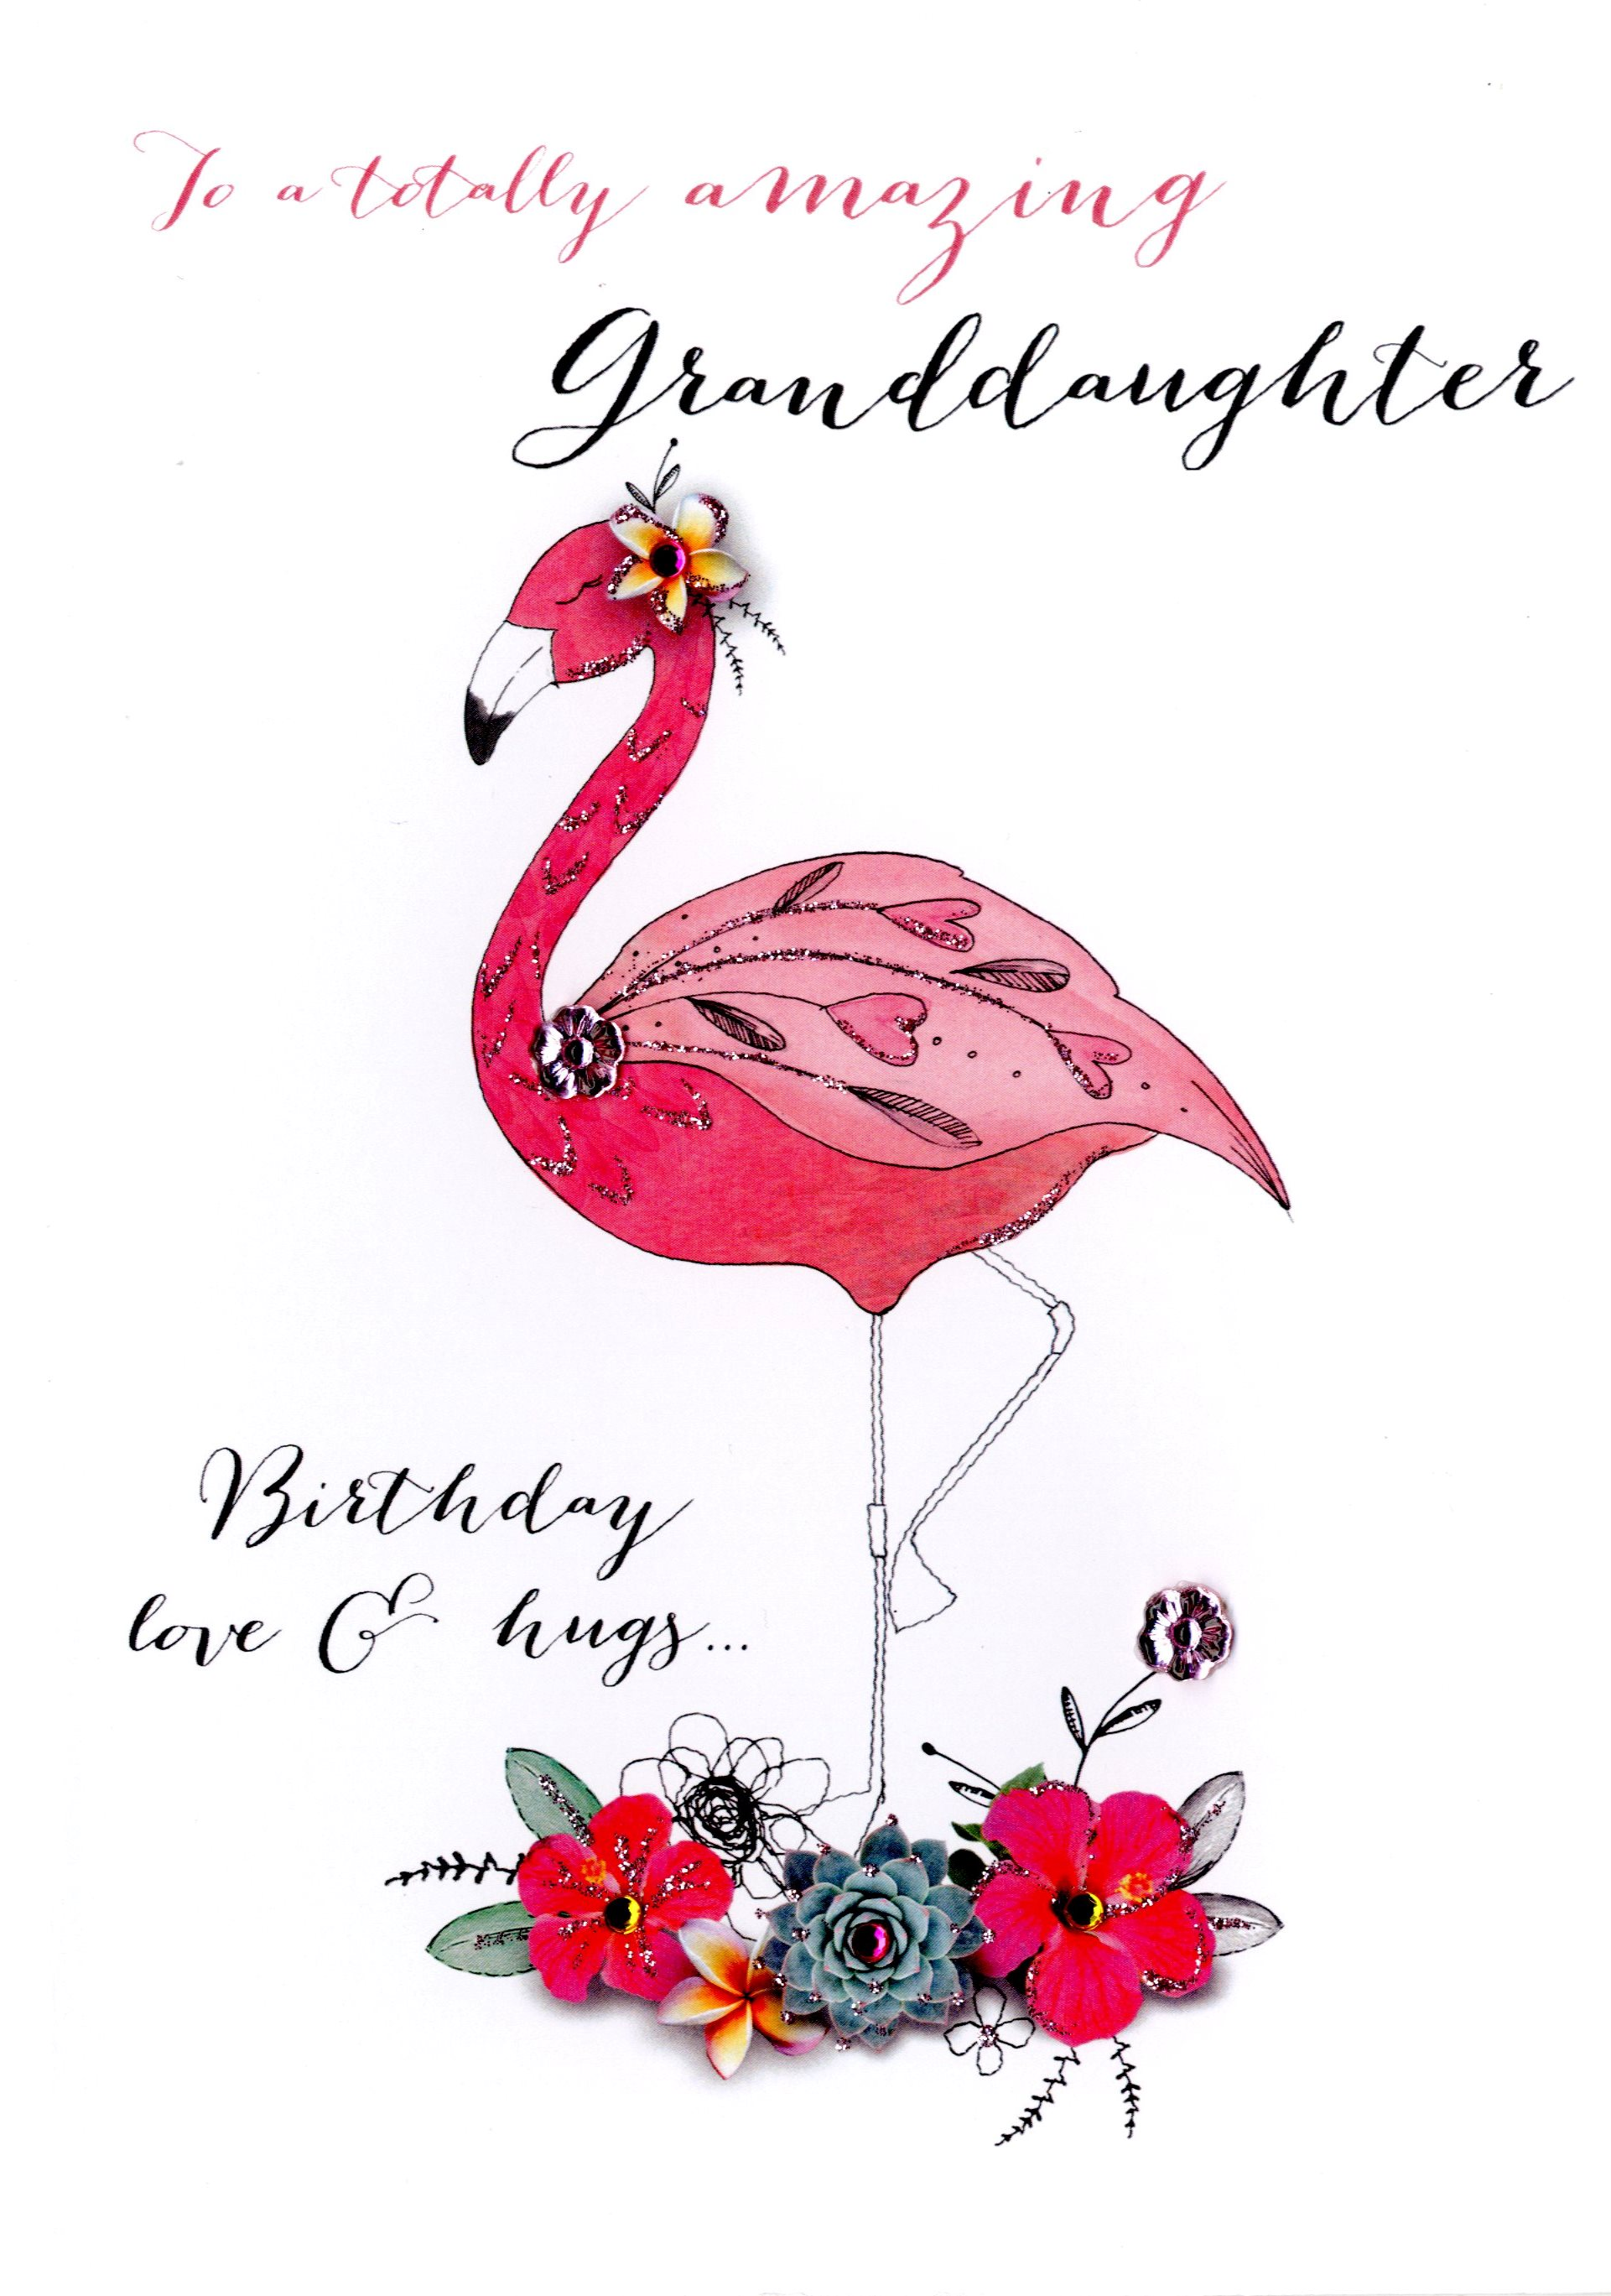 Amazing granddaughter birthday embellished greeting card cards amazing granddaughter birthday embellished greeting card bookmarktalkfo Gallery